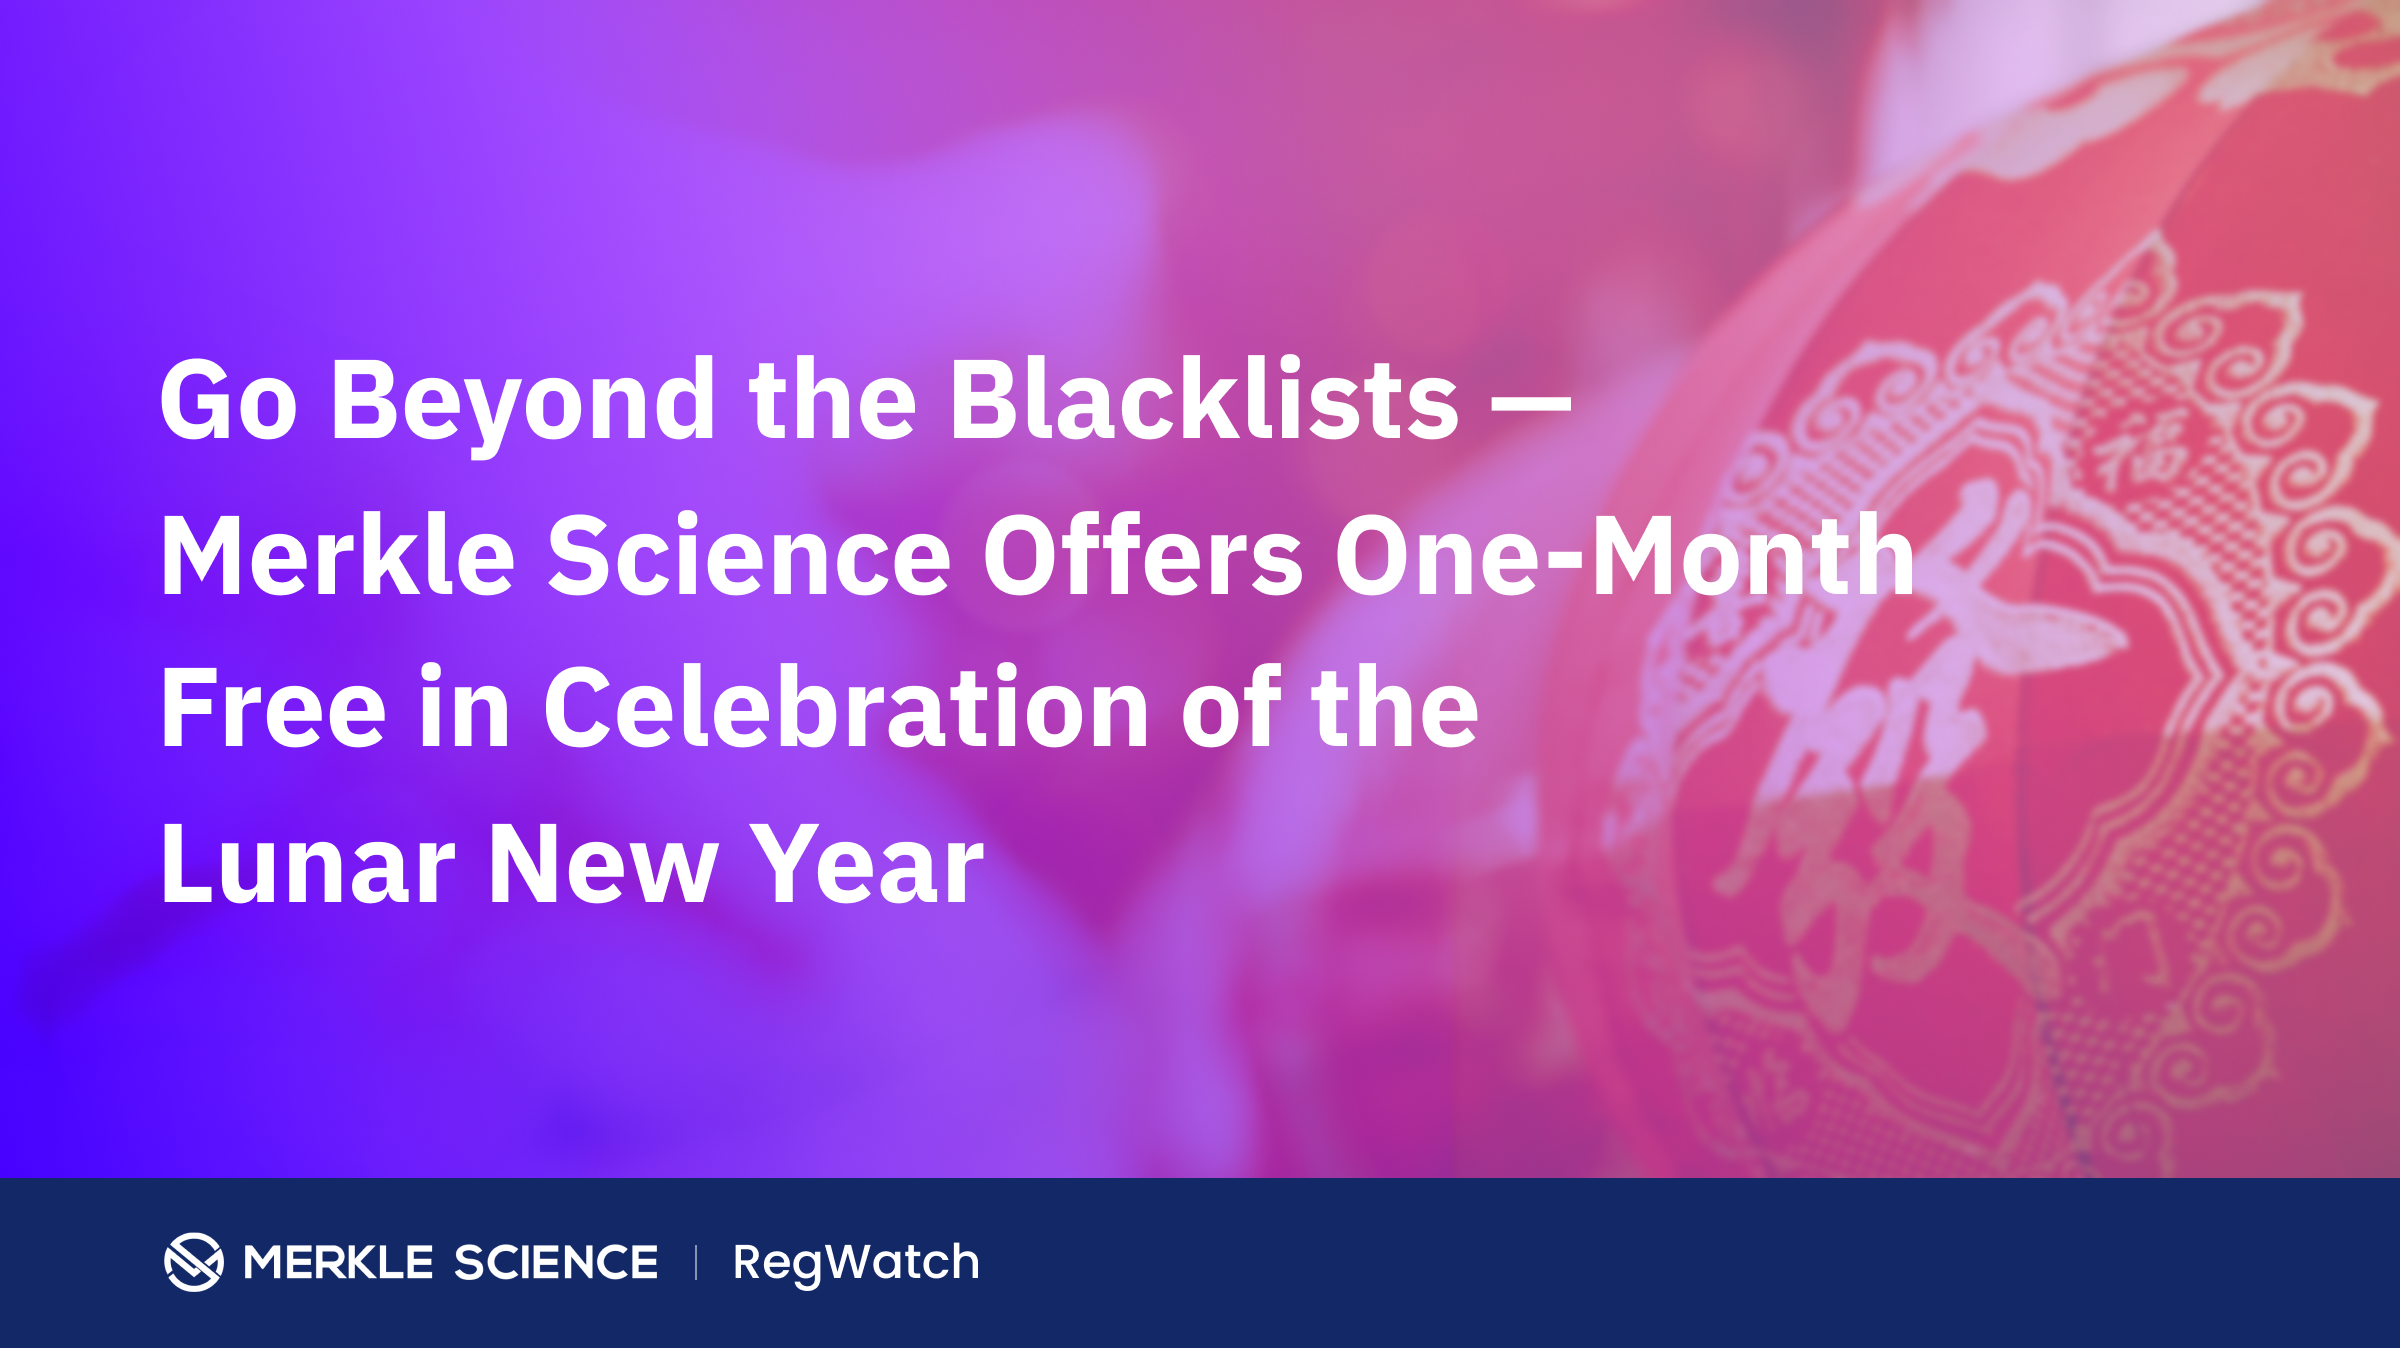 Go Beyond the Blacklists — Merkle Science Offers One-Month Free in Celebration of the Lunar New Year